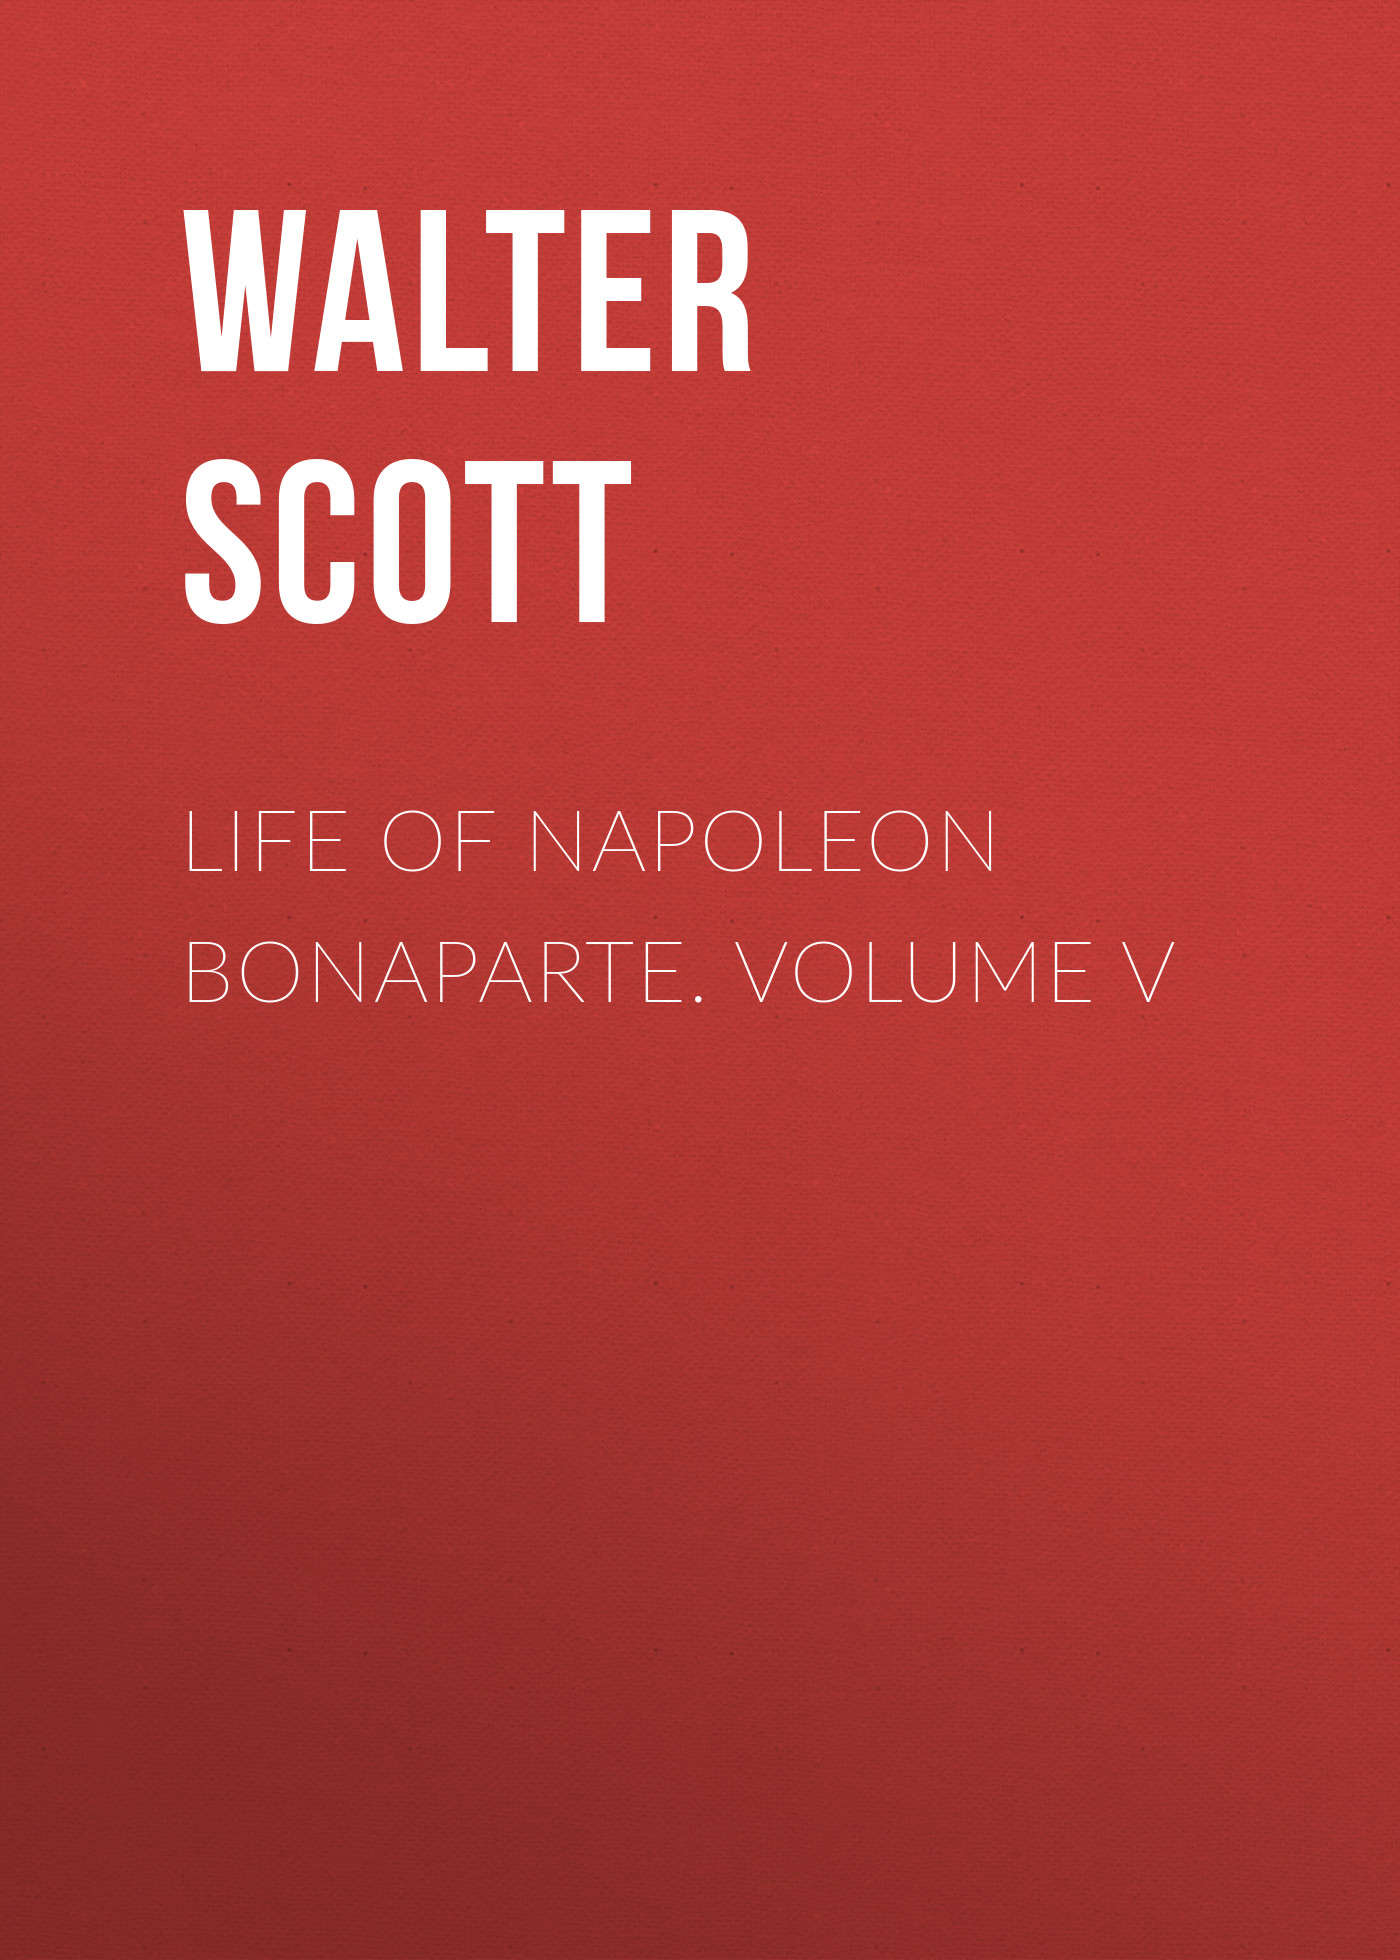 Life of Napoleon Bonaparte. Volume V